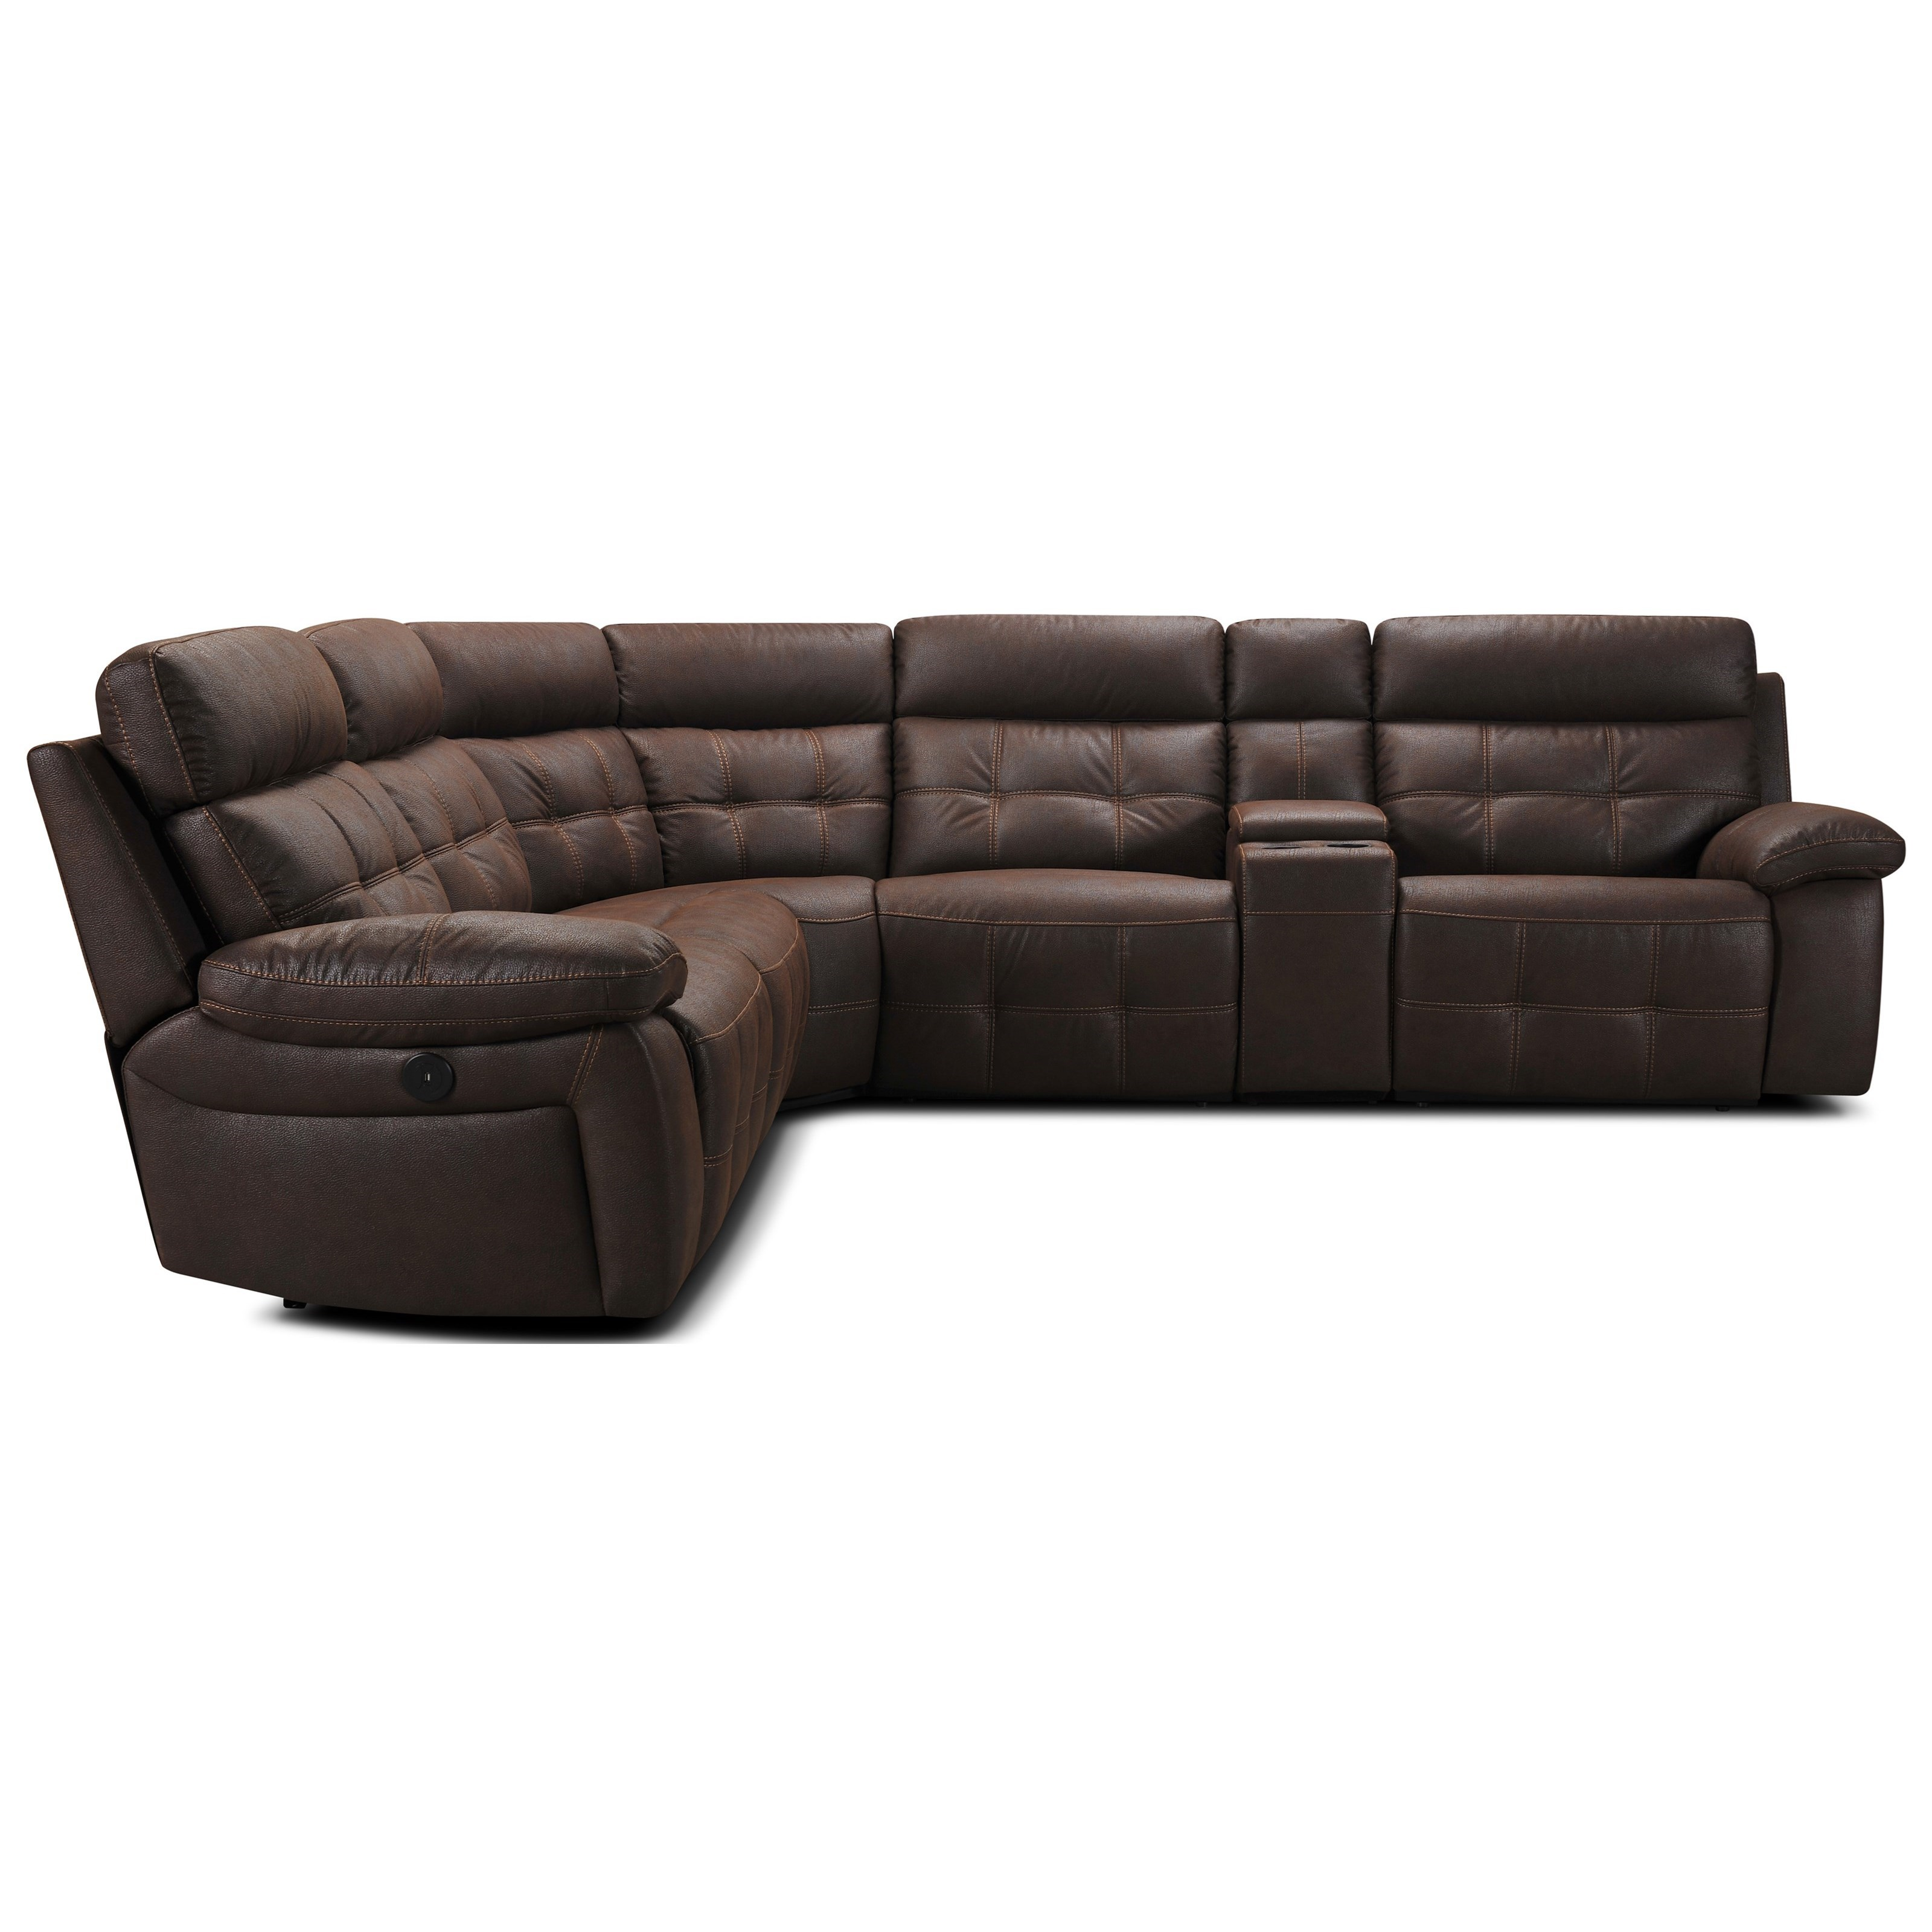 31736 6 Pc Reclining Sectional Sofa by Violino at Furniture Superstore - Rochester, MN